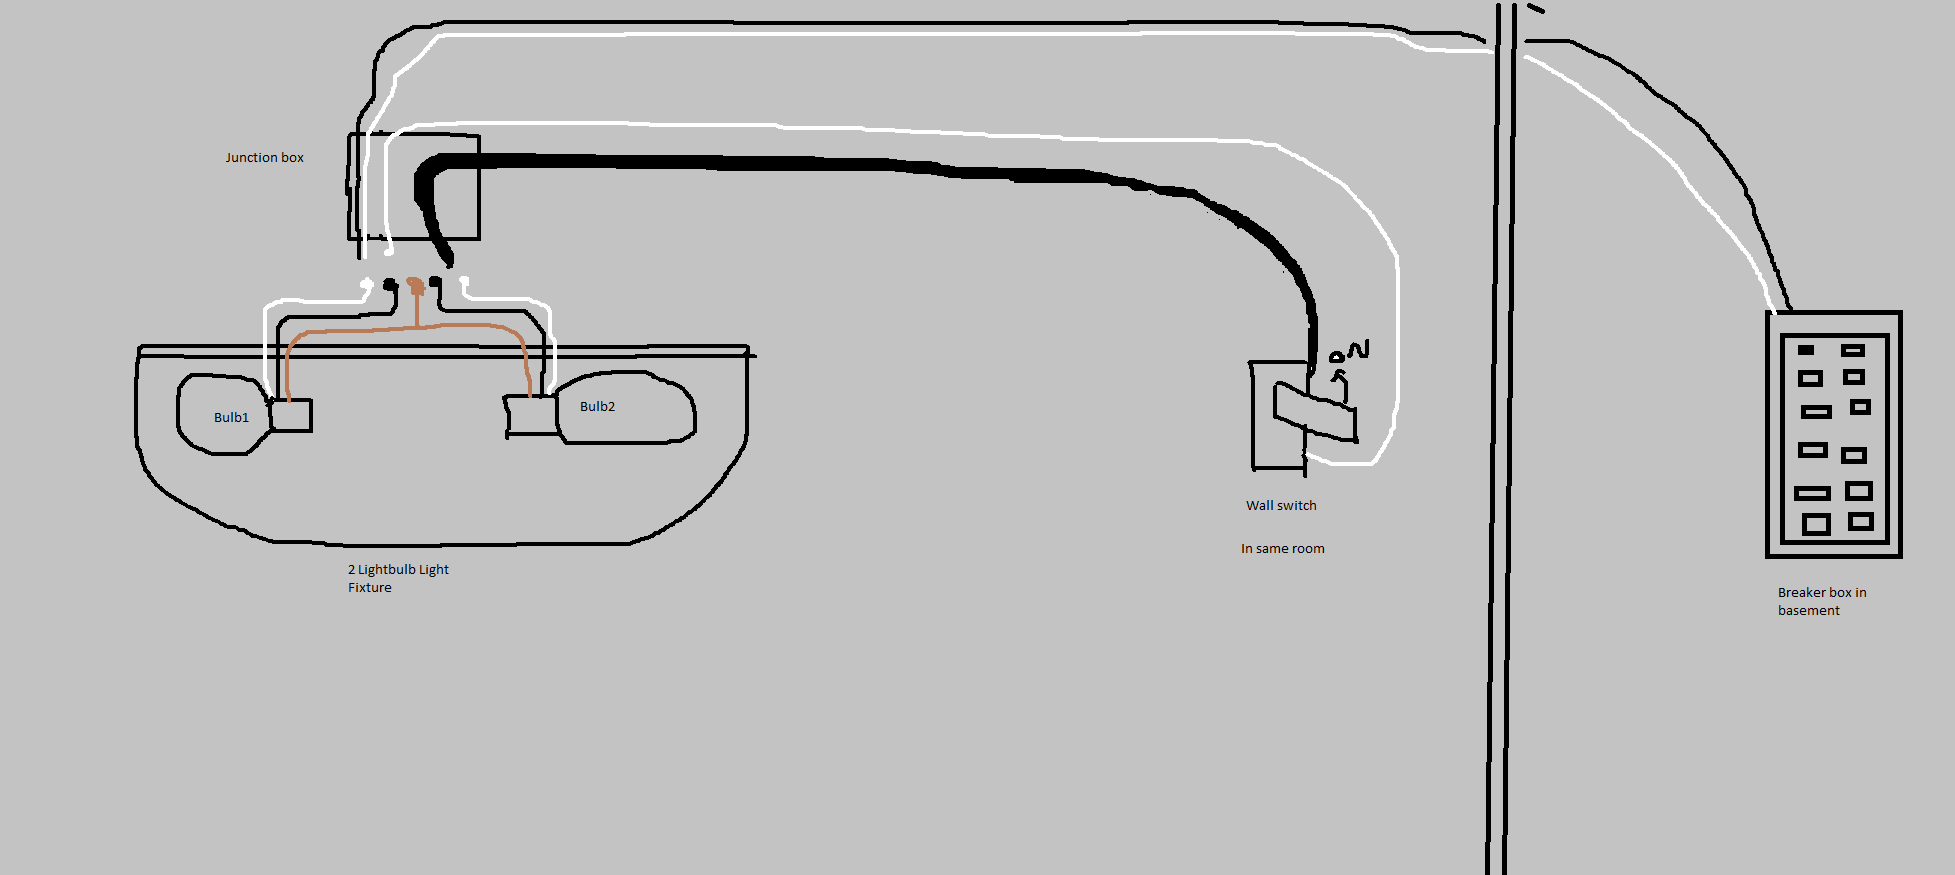 Electrical - 4 Wires In Ceiling Box, 2 On New Light - Help With - Breaker Box Wiring Diagram